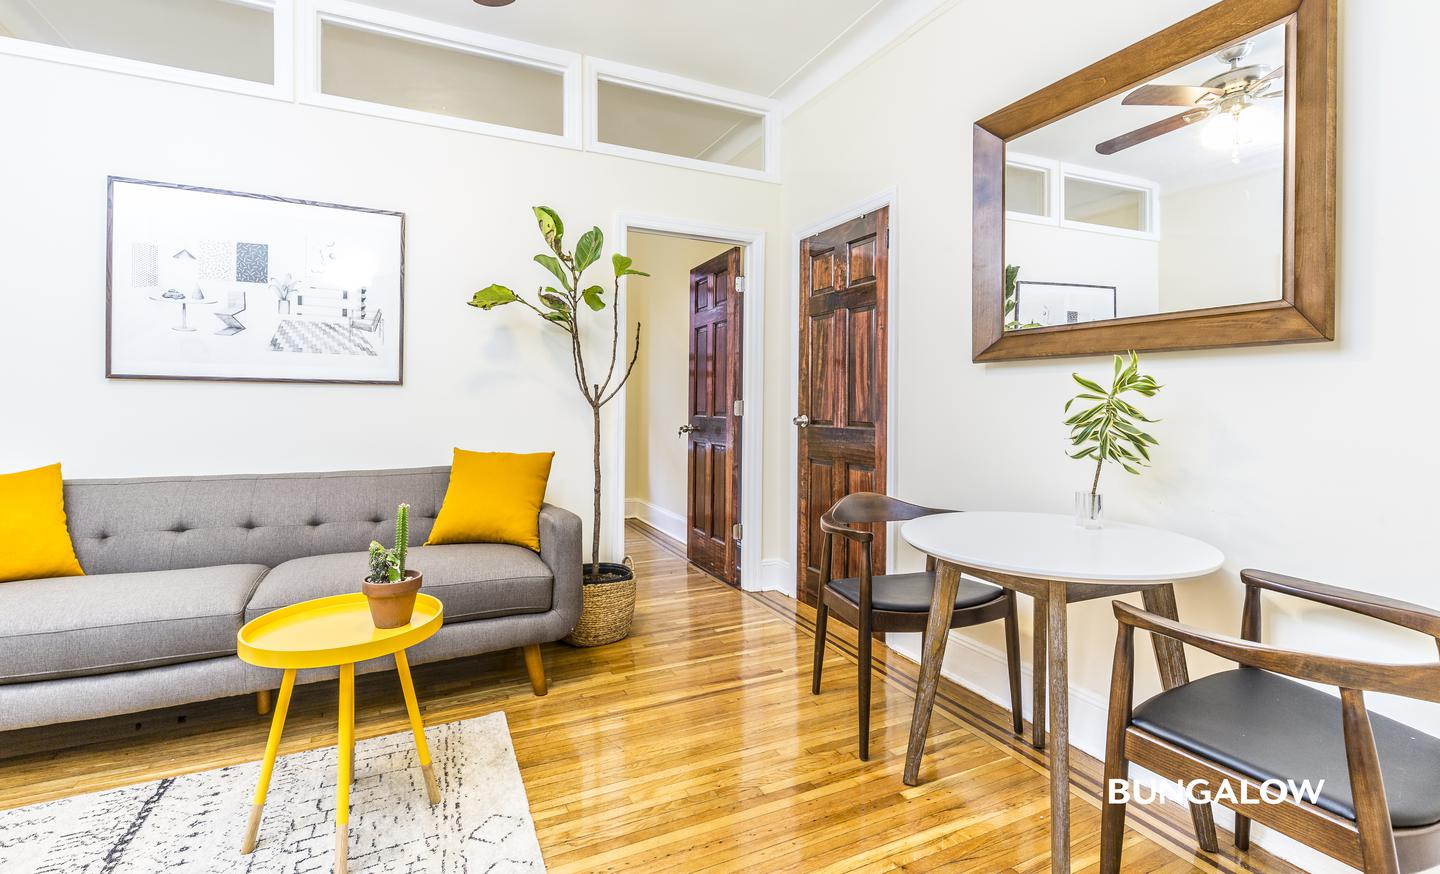 Apartments Near Baruch Private Bedroom in East Village Apartment with Exposed Brick and Hardwood Floors for Bernard M Baruch College Students in New York, NY